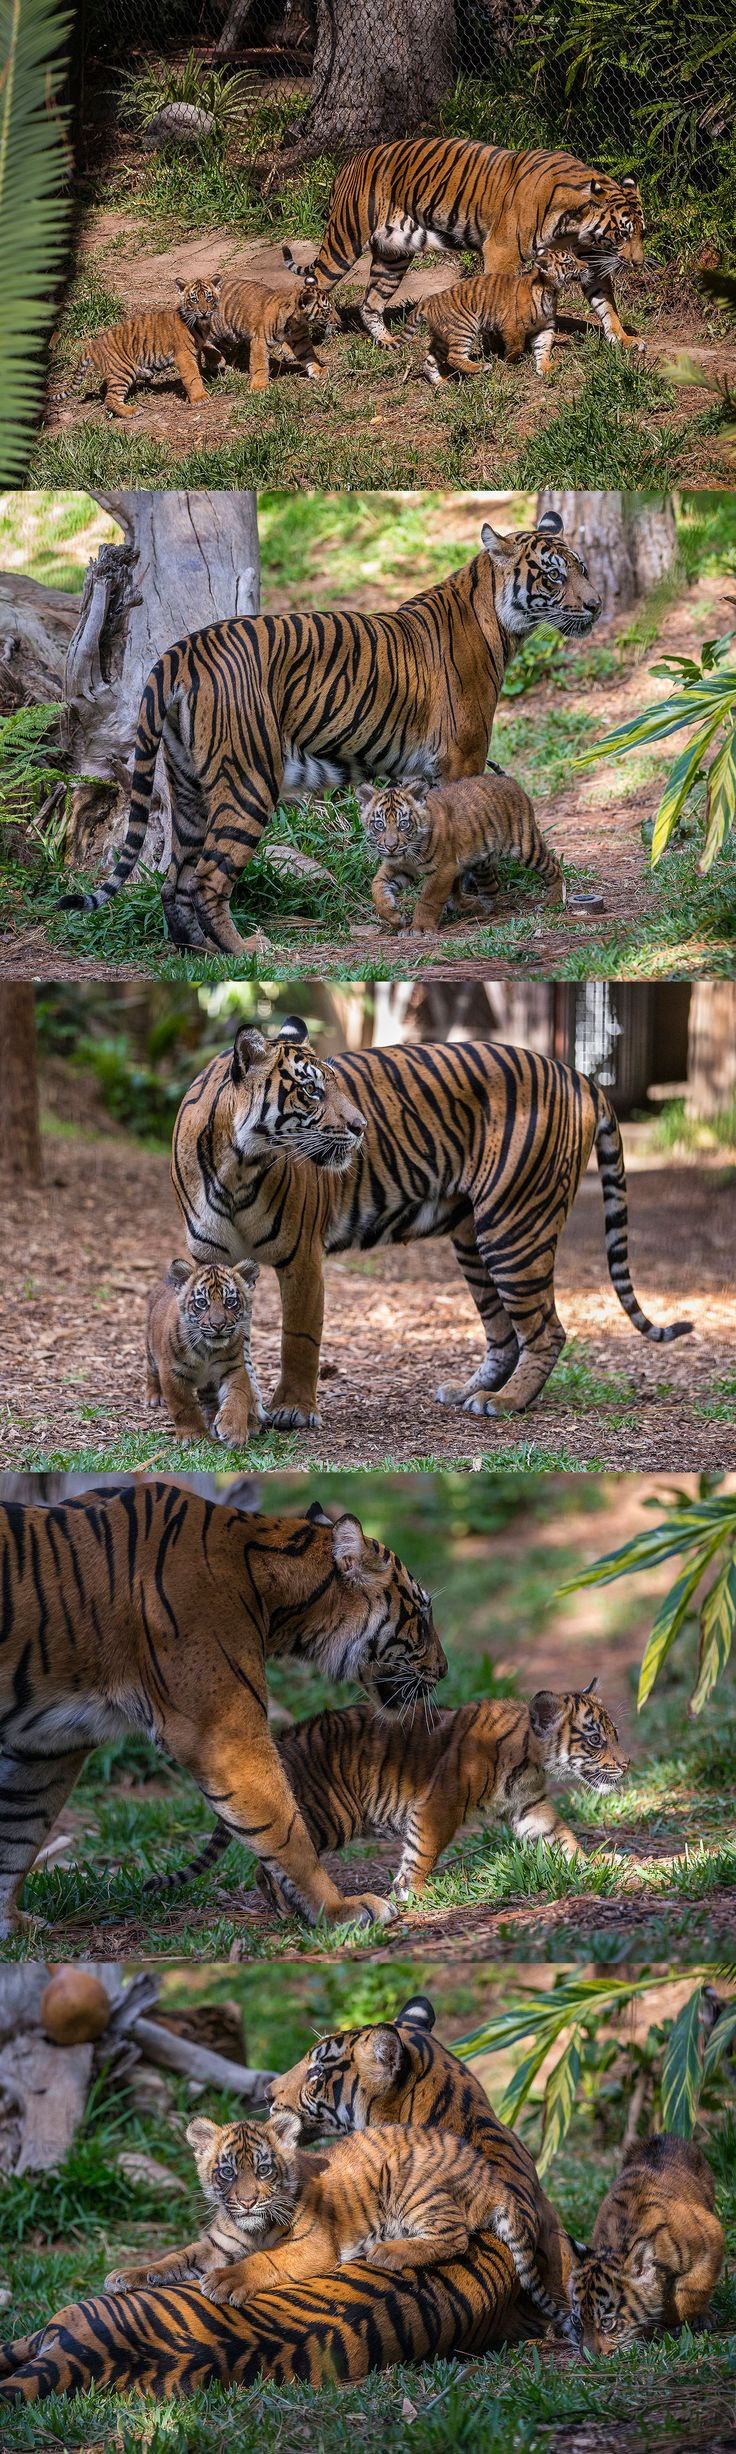 Adult female Sumatran tiger Joanne and her three 3-month-old cubs—Nelson, Cathy and Debbie—pounced onto exhibit recently. This is the first litter of cubs that Joanne has raised, and they will be on exhibit at Tiger Trail every day from 9 a.m. to 1 p.m.